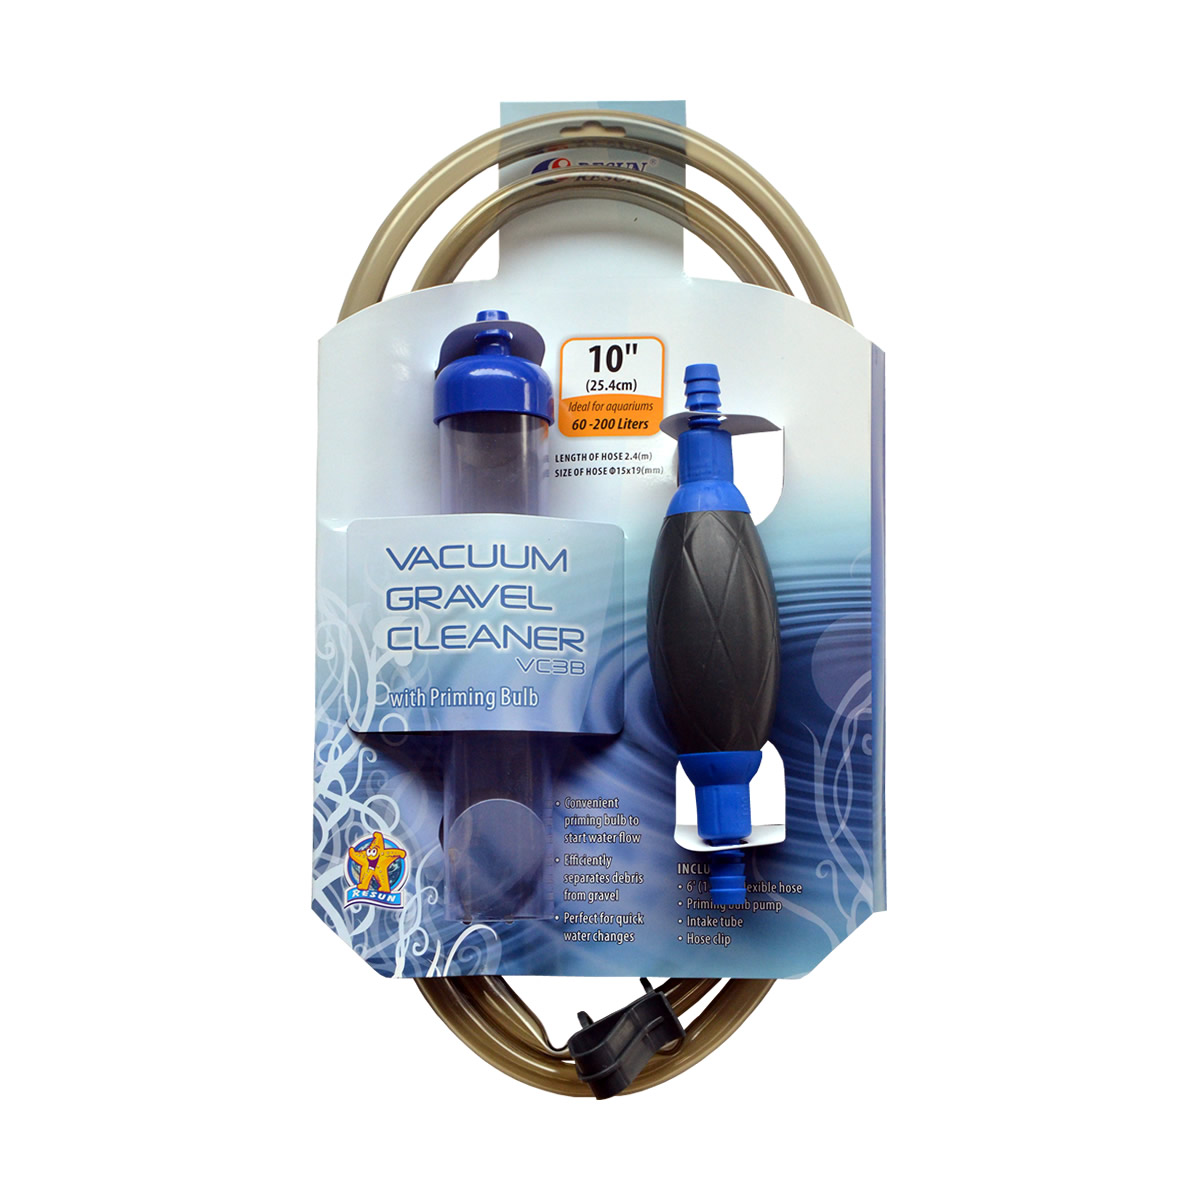 ReSun VC-3B Siphon Vacuum Gravel Cleaner With Hose Clip